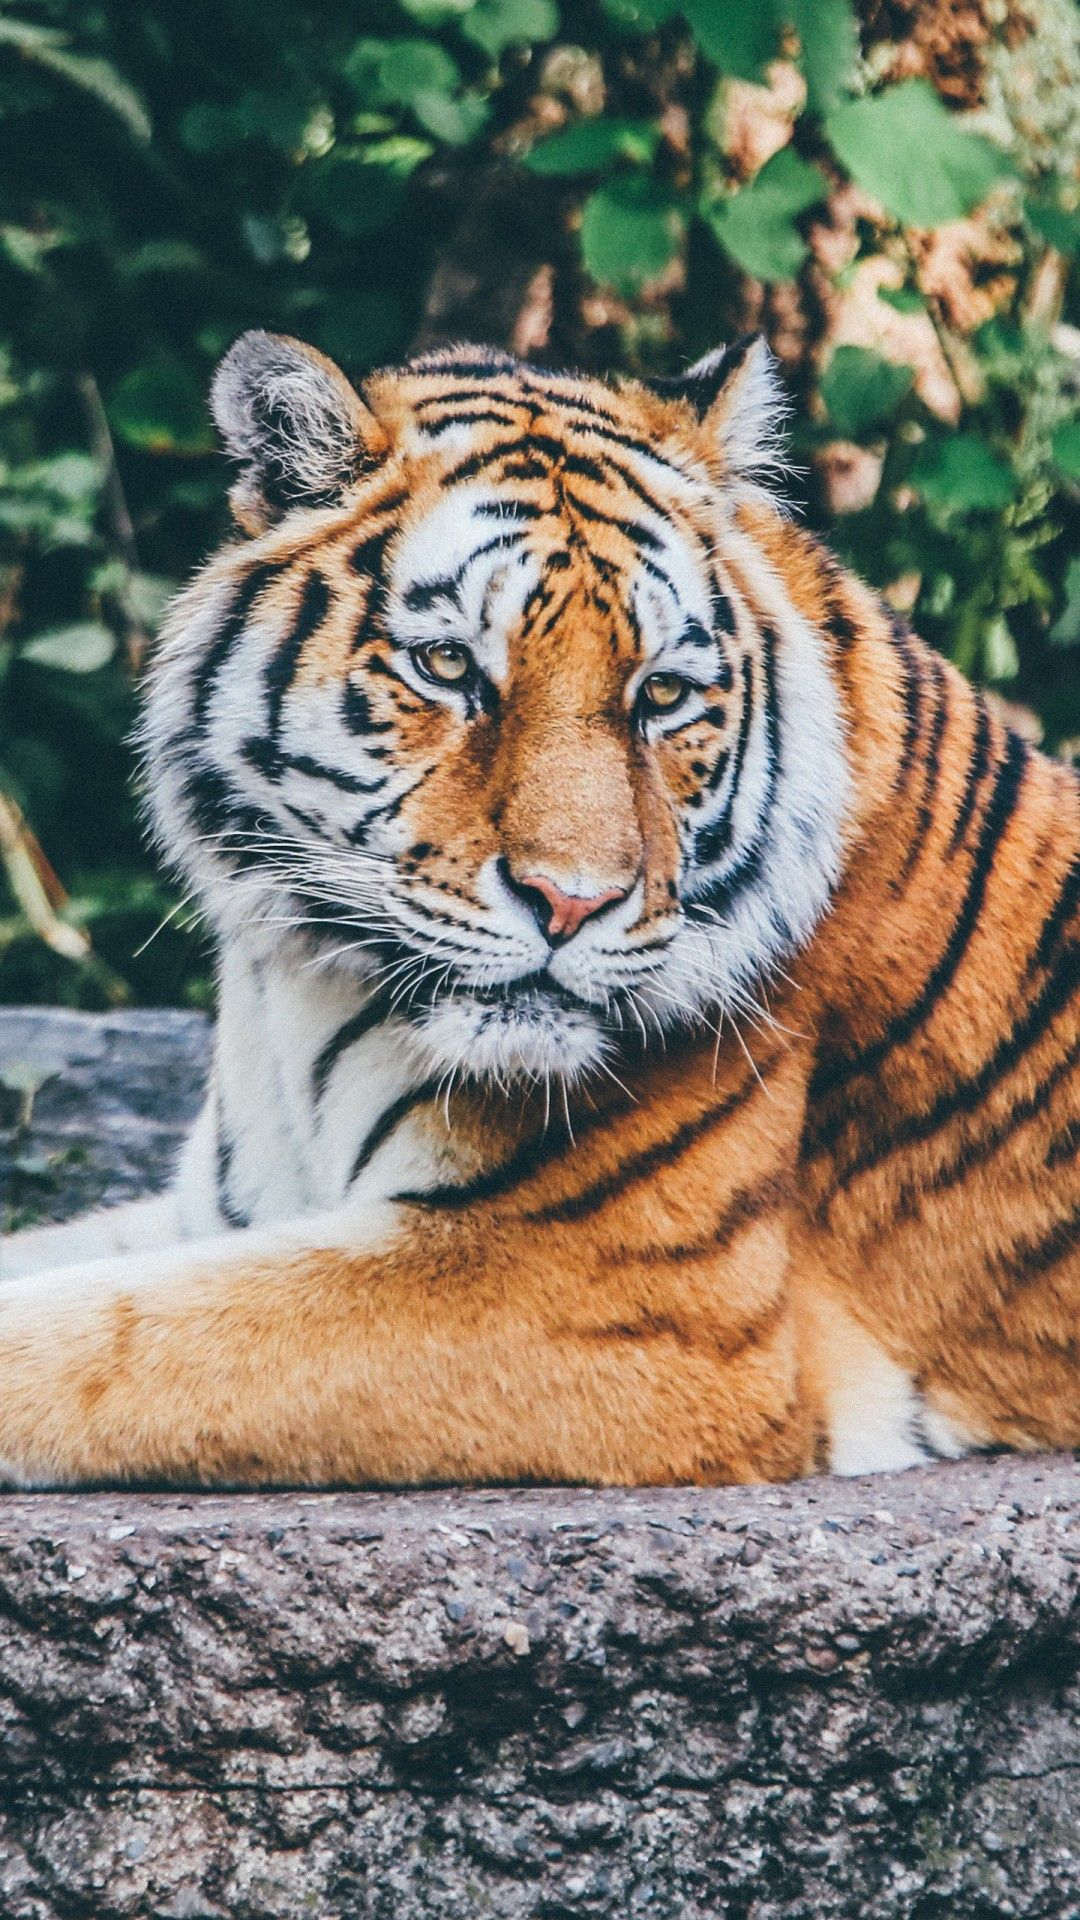 Tiger Wallpapers 1080p Hupages Download Iphone Wallpapers Tiger Wallpaper Animal Wallpaper Tiger Wallpaper Iphone